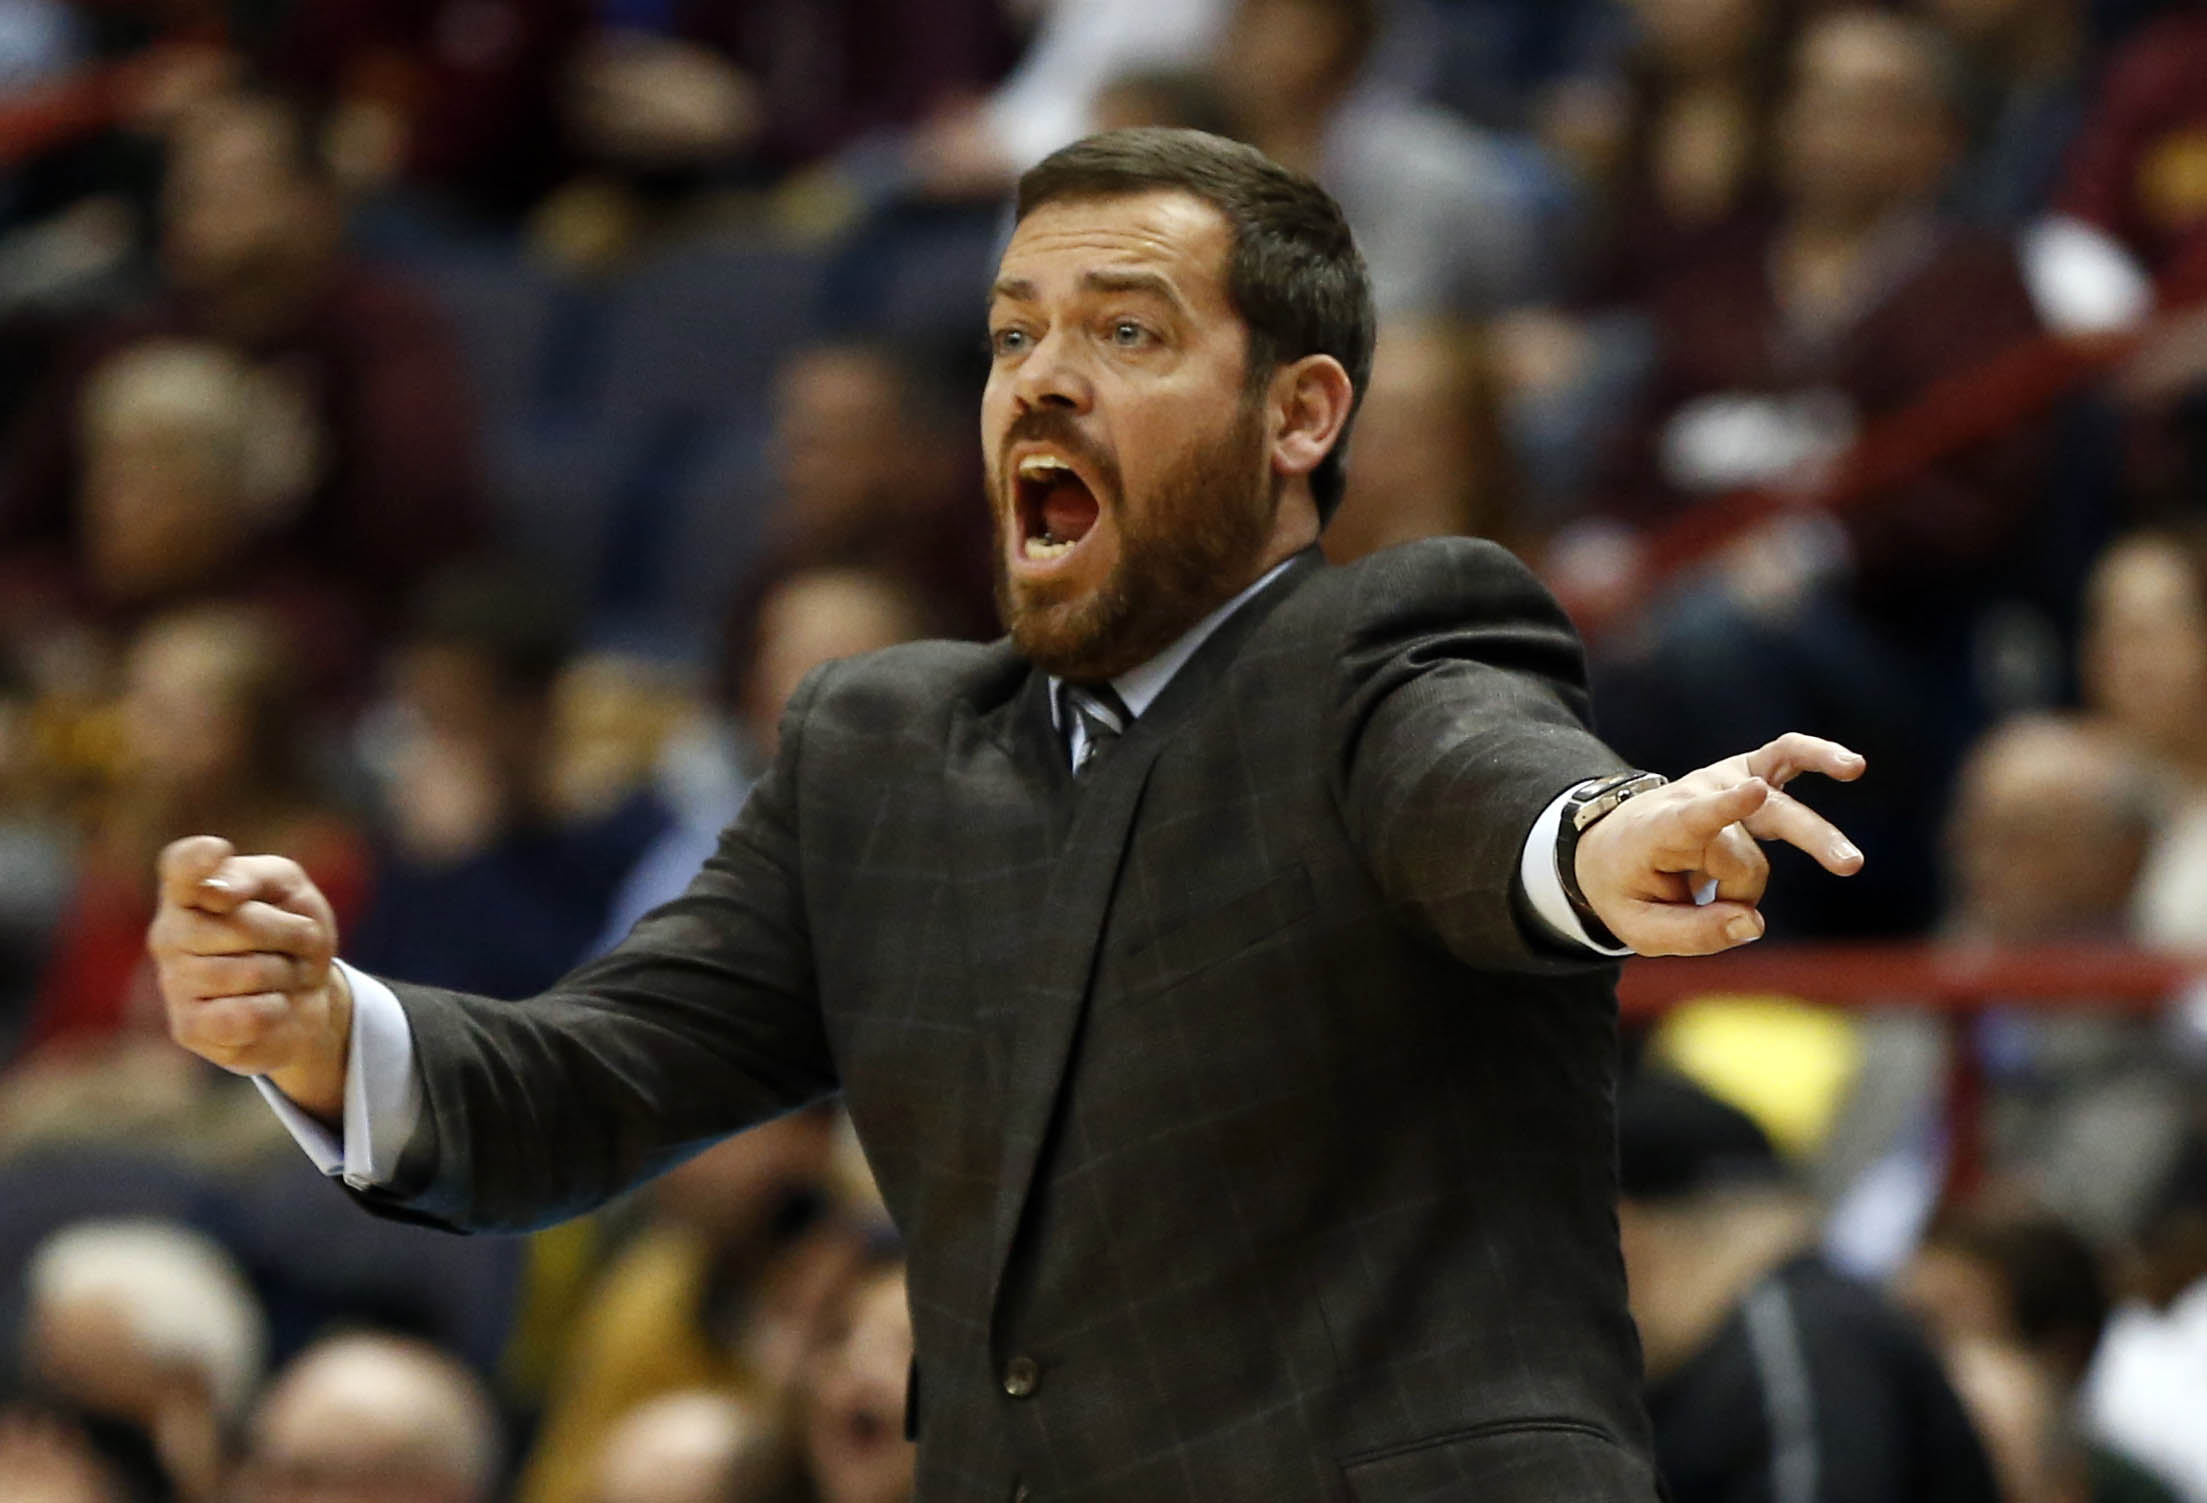 Manhattan coach Steve Masiello caps an unbelievable year with an unpredictable championship